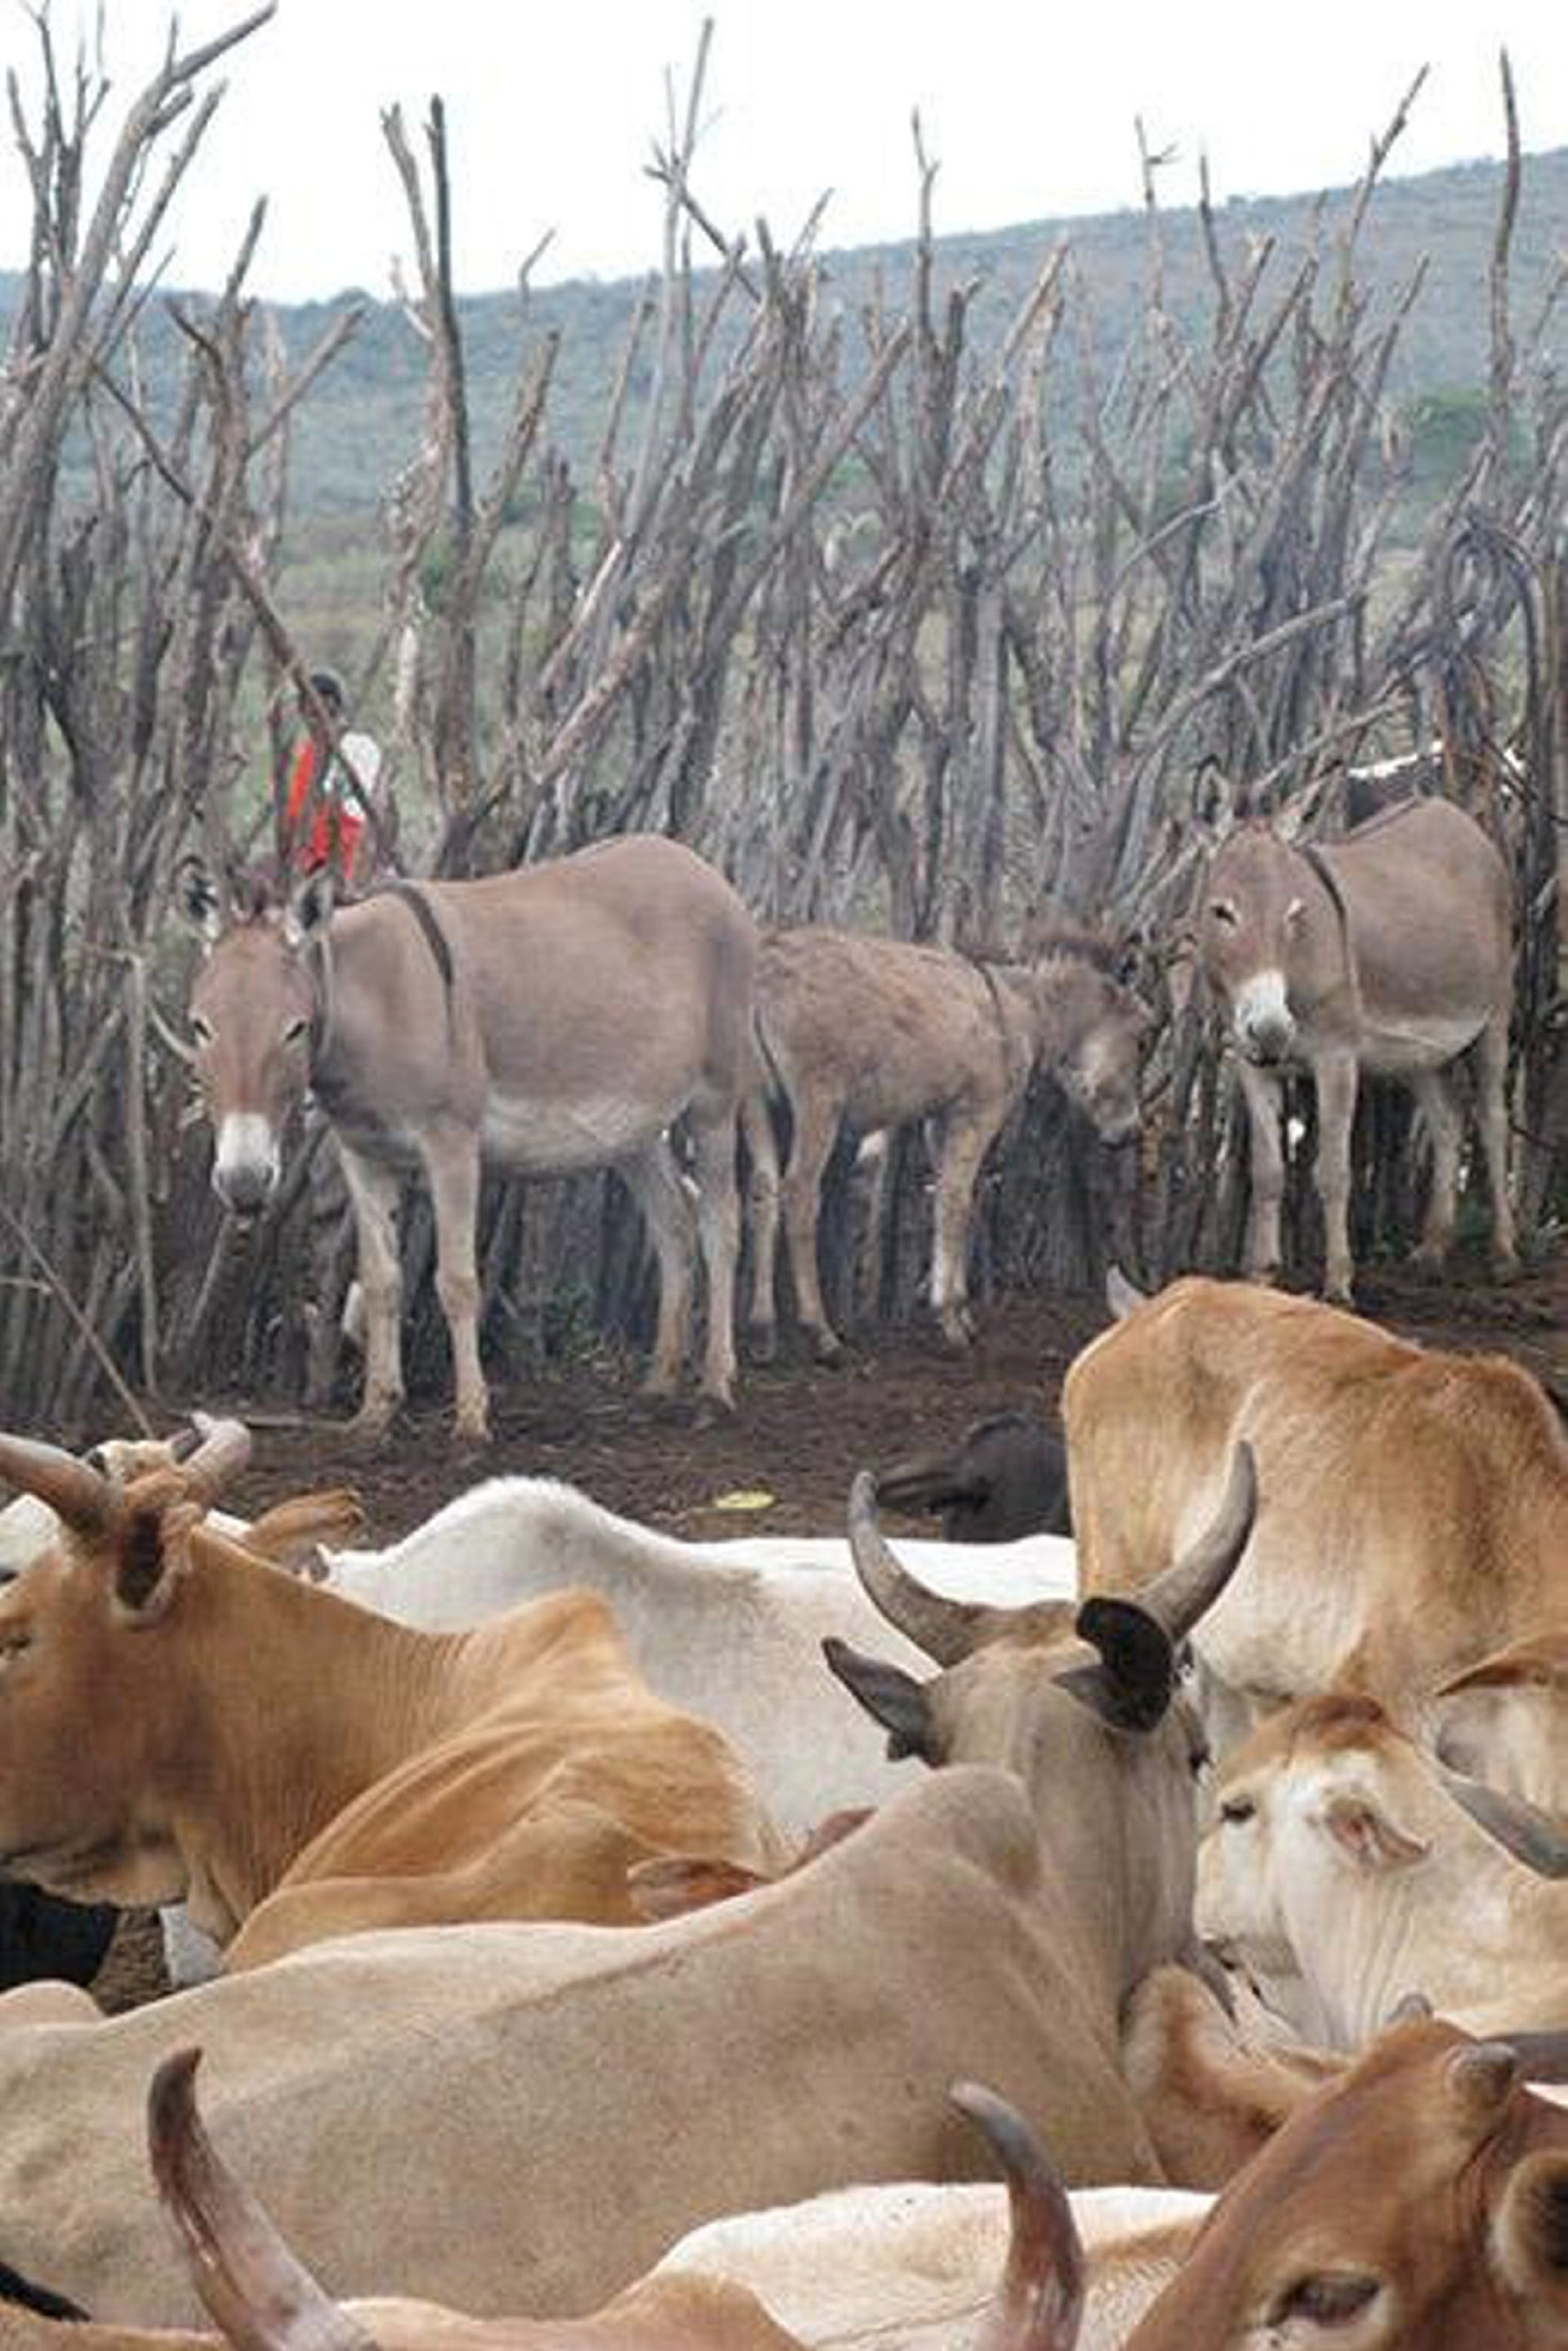 Cattle corrals, such as this one in a modern Maasai homestead in Kenya, have been used for thousands of years to provide overnight protection to cattle and other livestock.